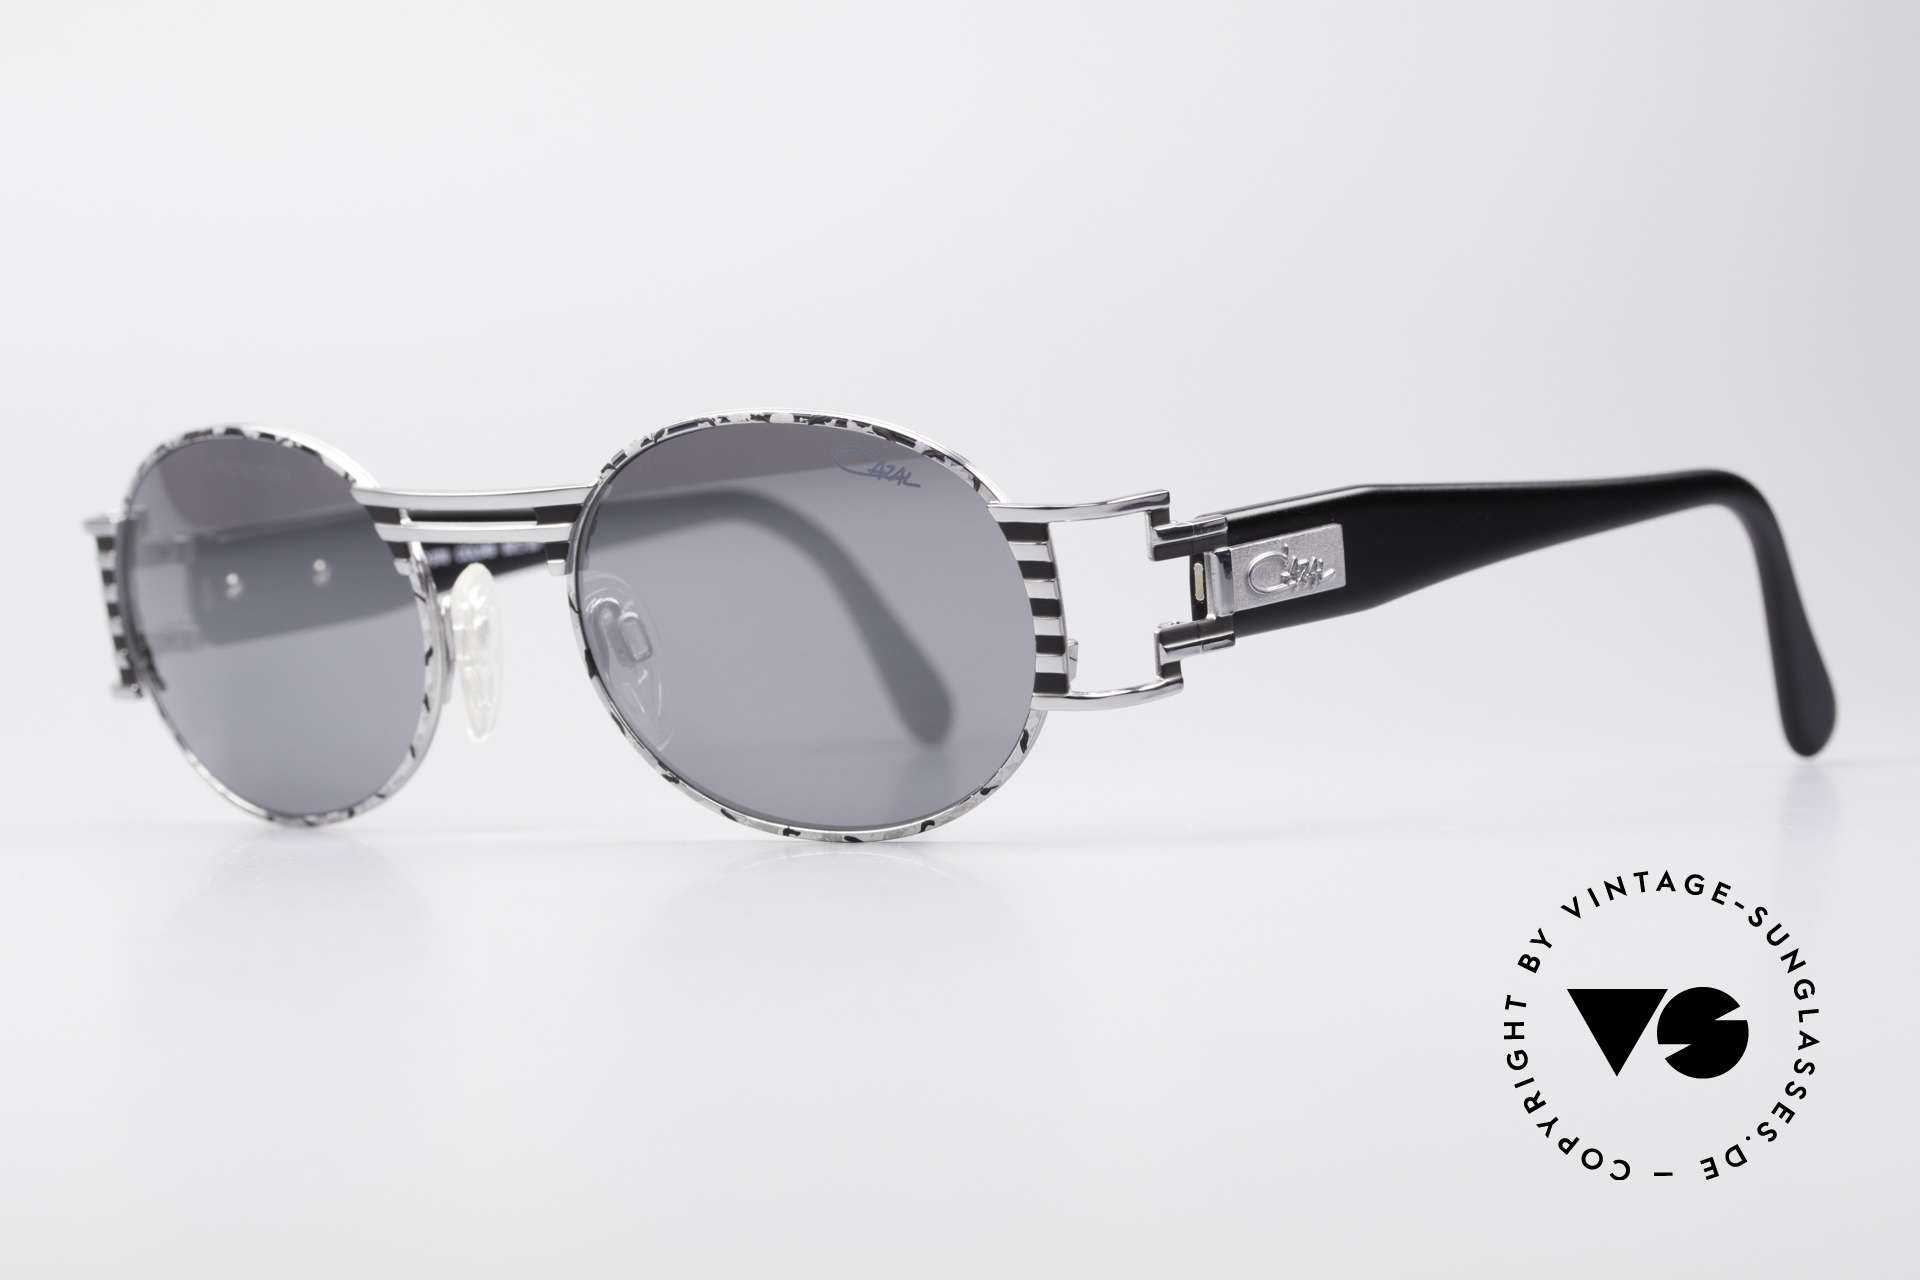 Cazal 976 Vintage Shades Oval Mirrored, best craftmanship and 1st class wearing comfort, Made for Men and Women